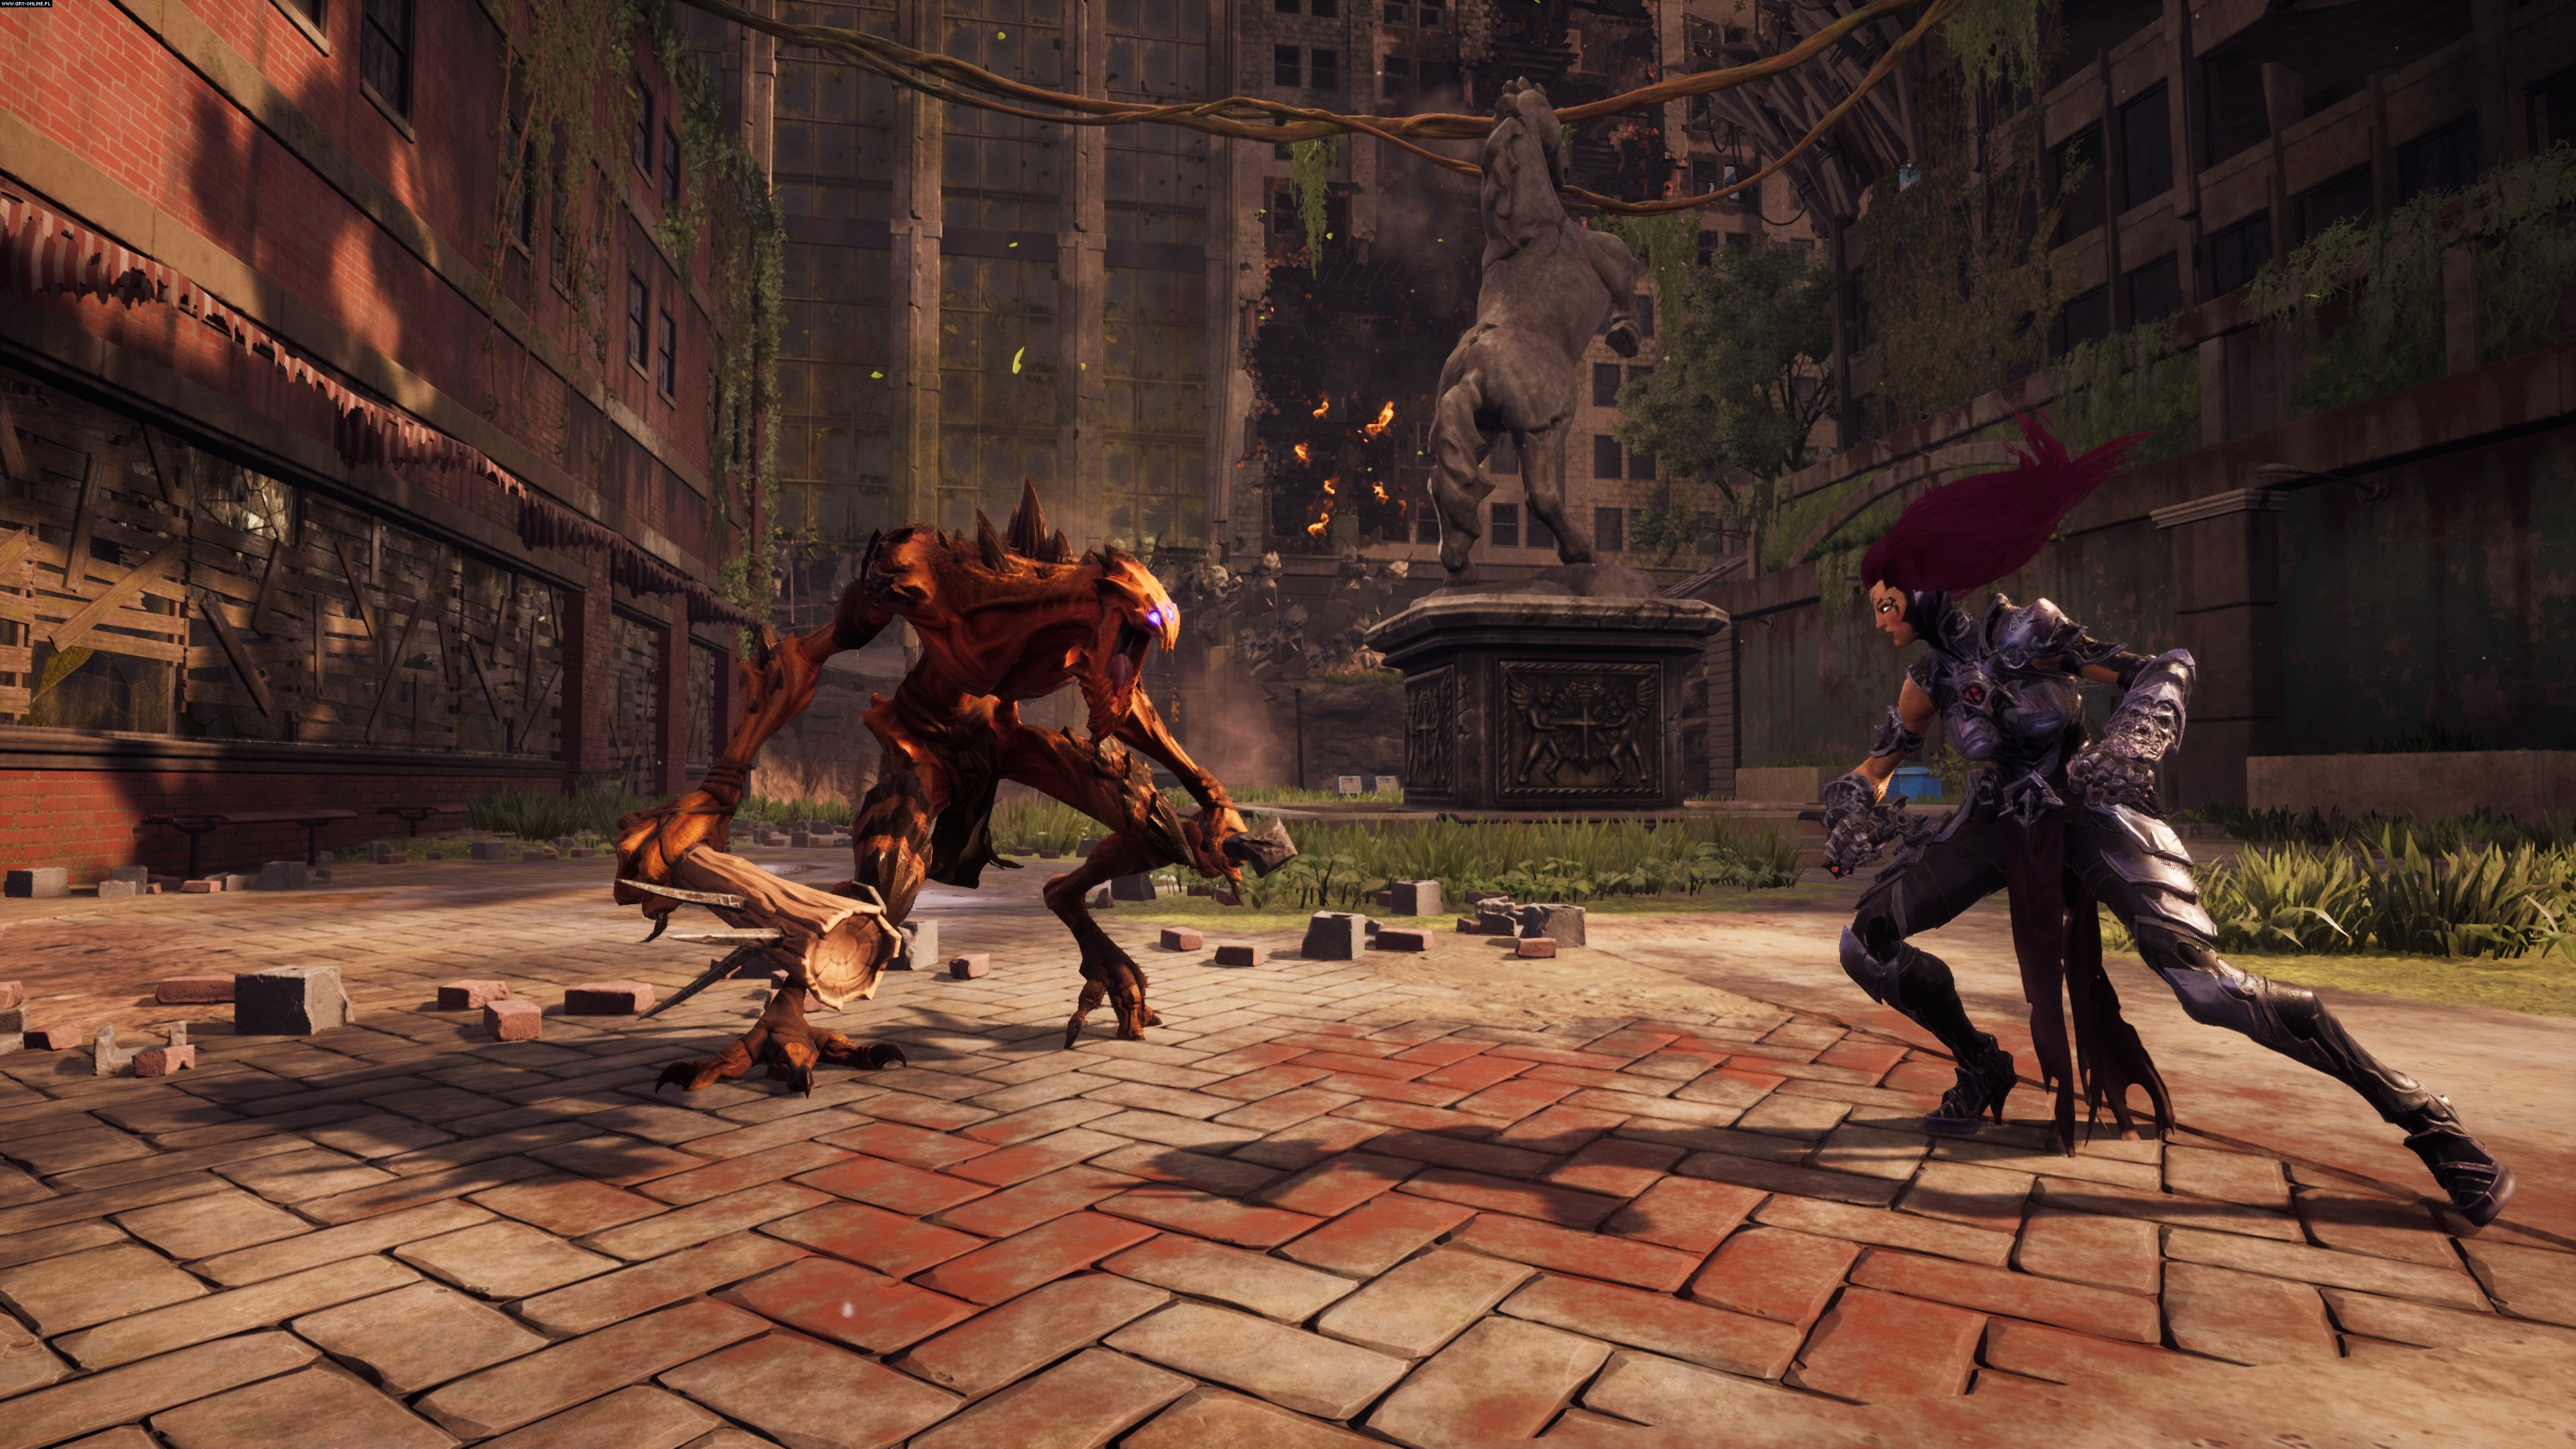 Darksiders III PC, PS4, XONE Games Image 29/45, Gunfire Games, THQ Nordic / Nordic Games